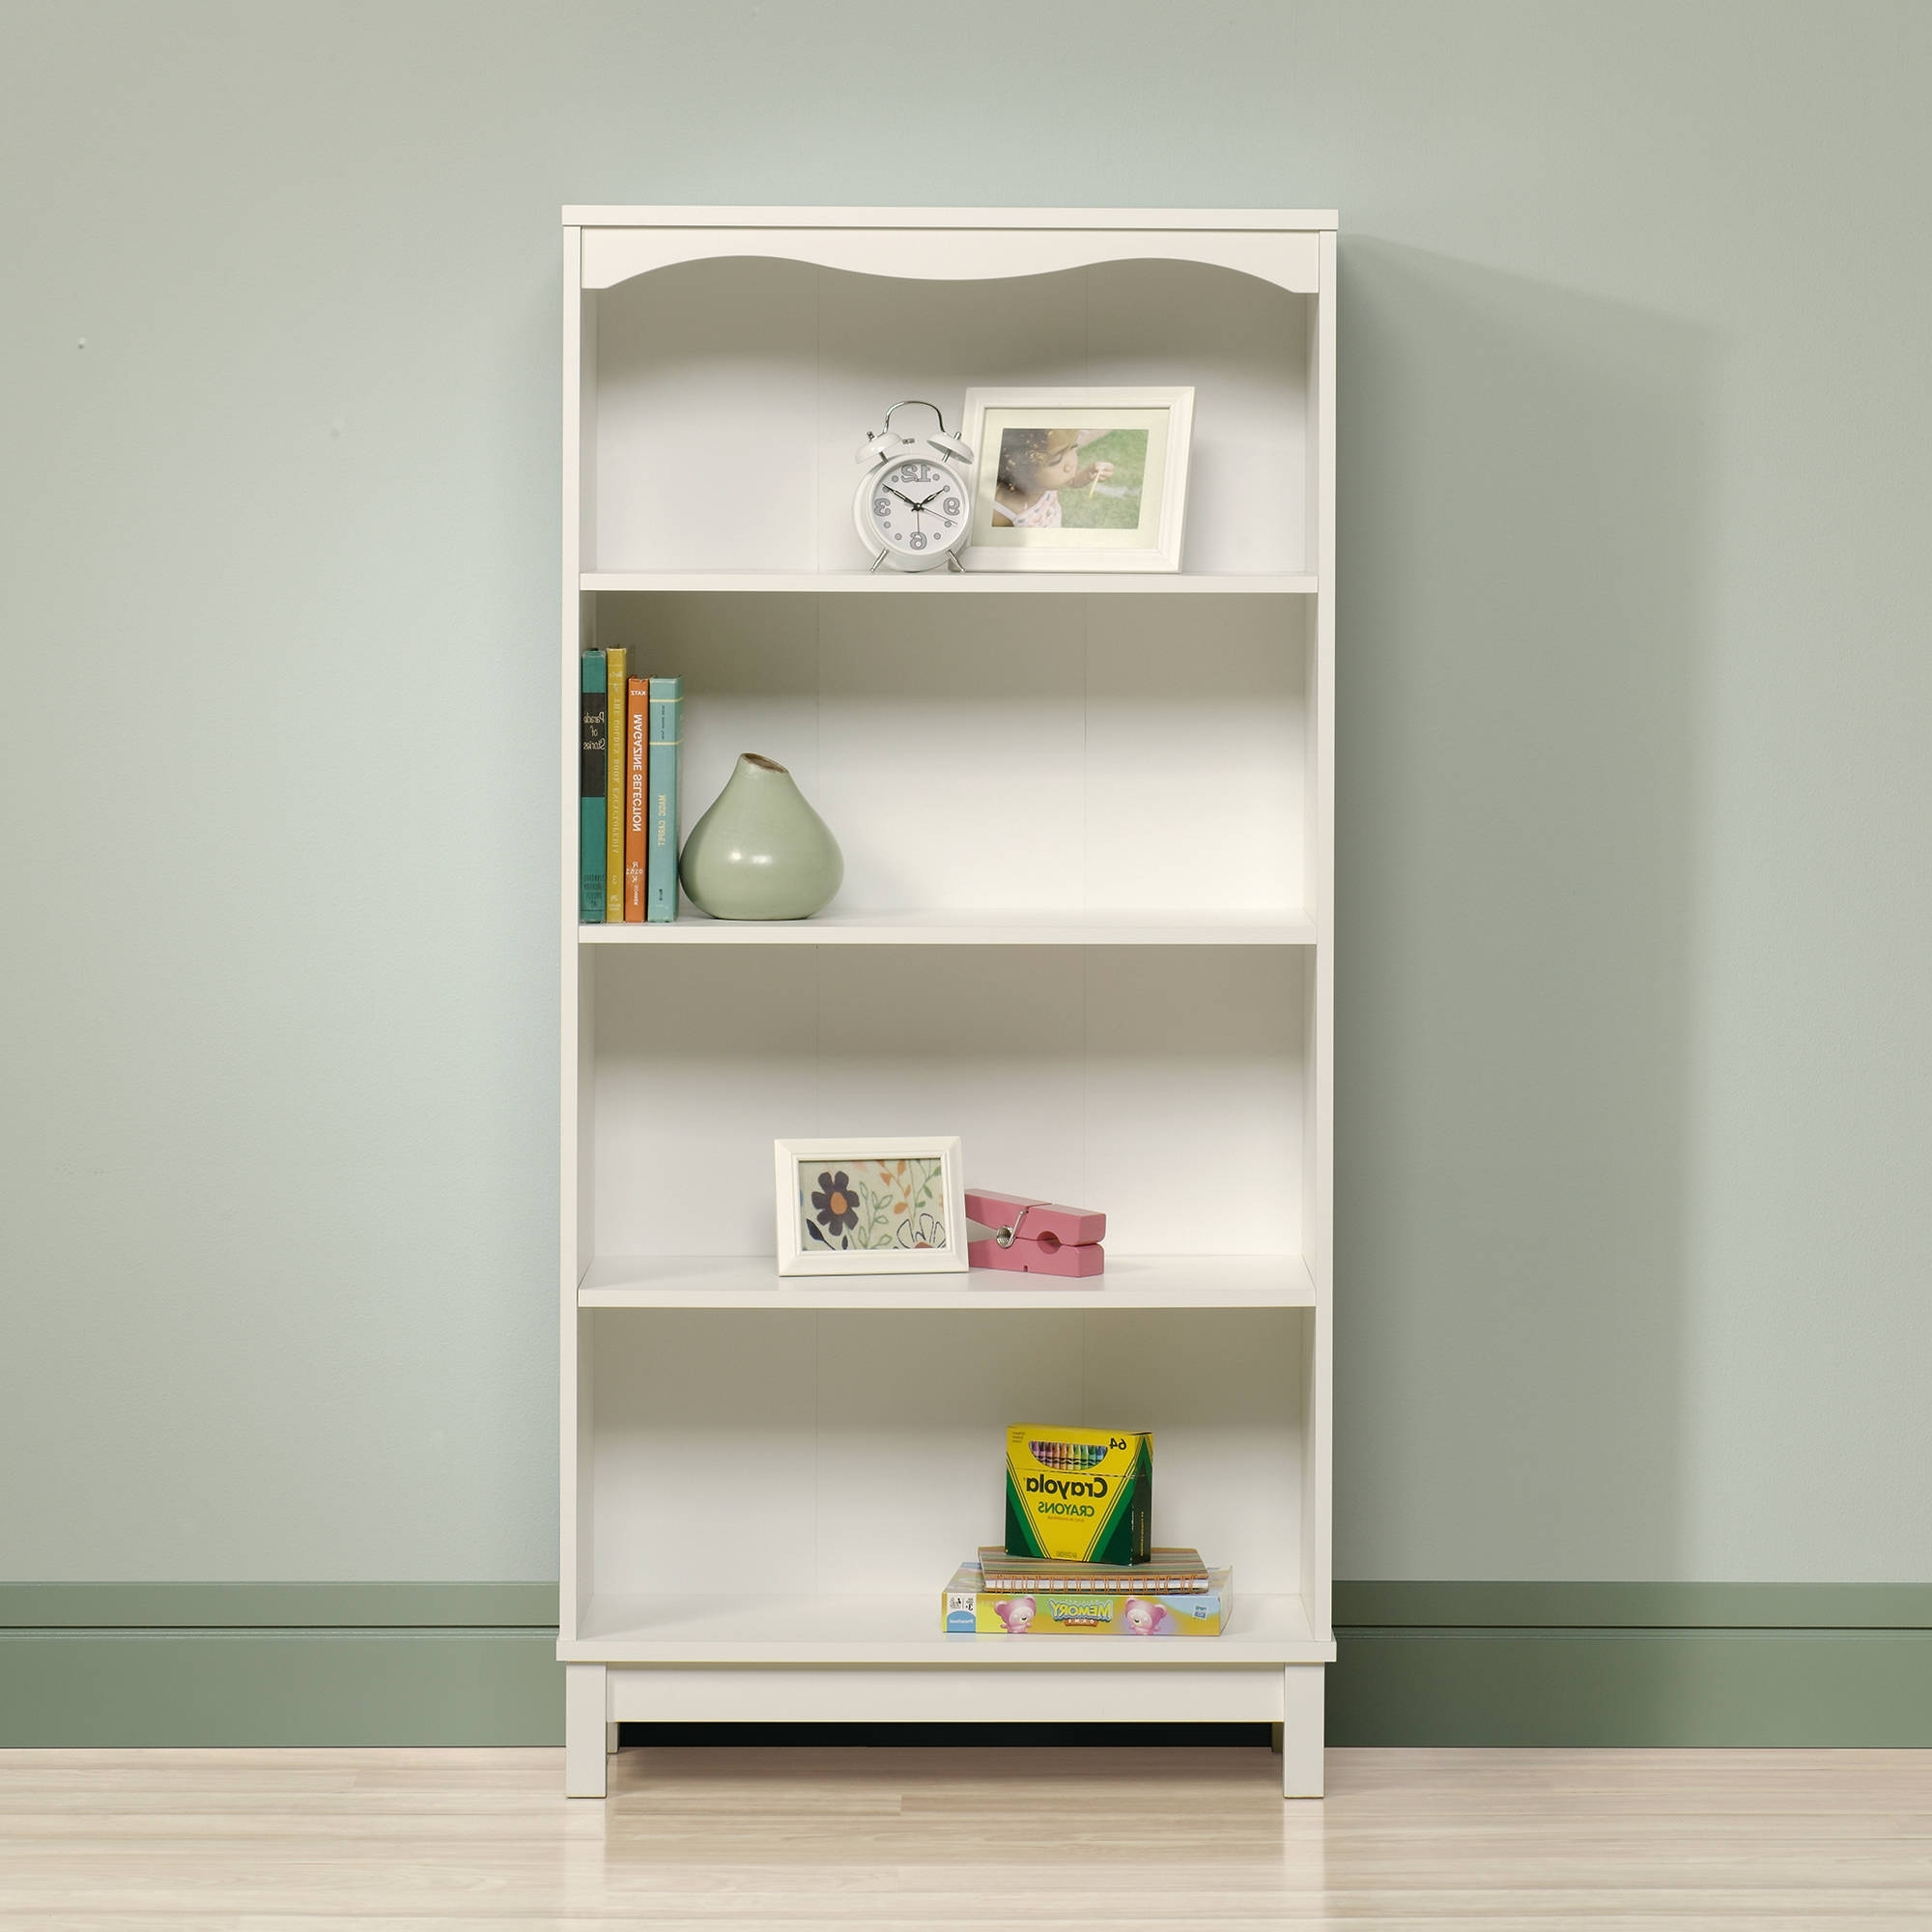 Sauder Storybook Bookcase, Soft White – Walmart Within Most Popular Walmart Bookcases (View 4 of 15)